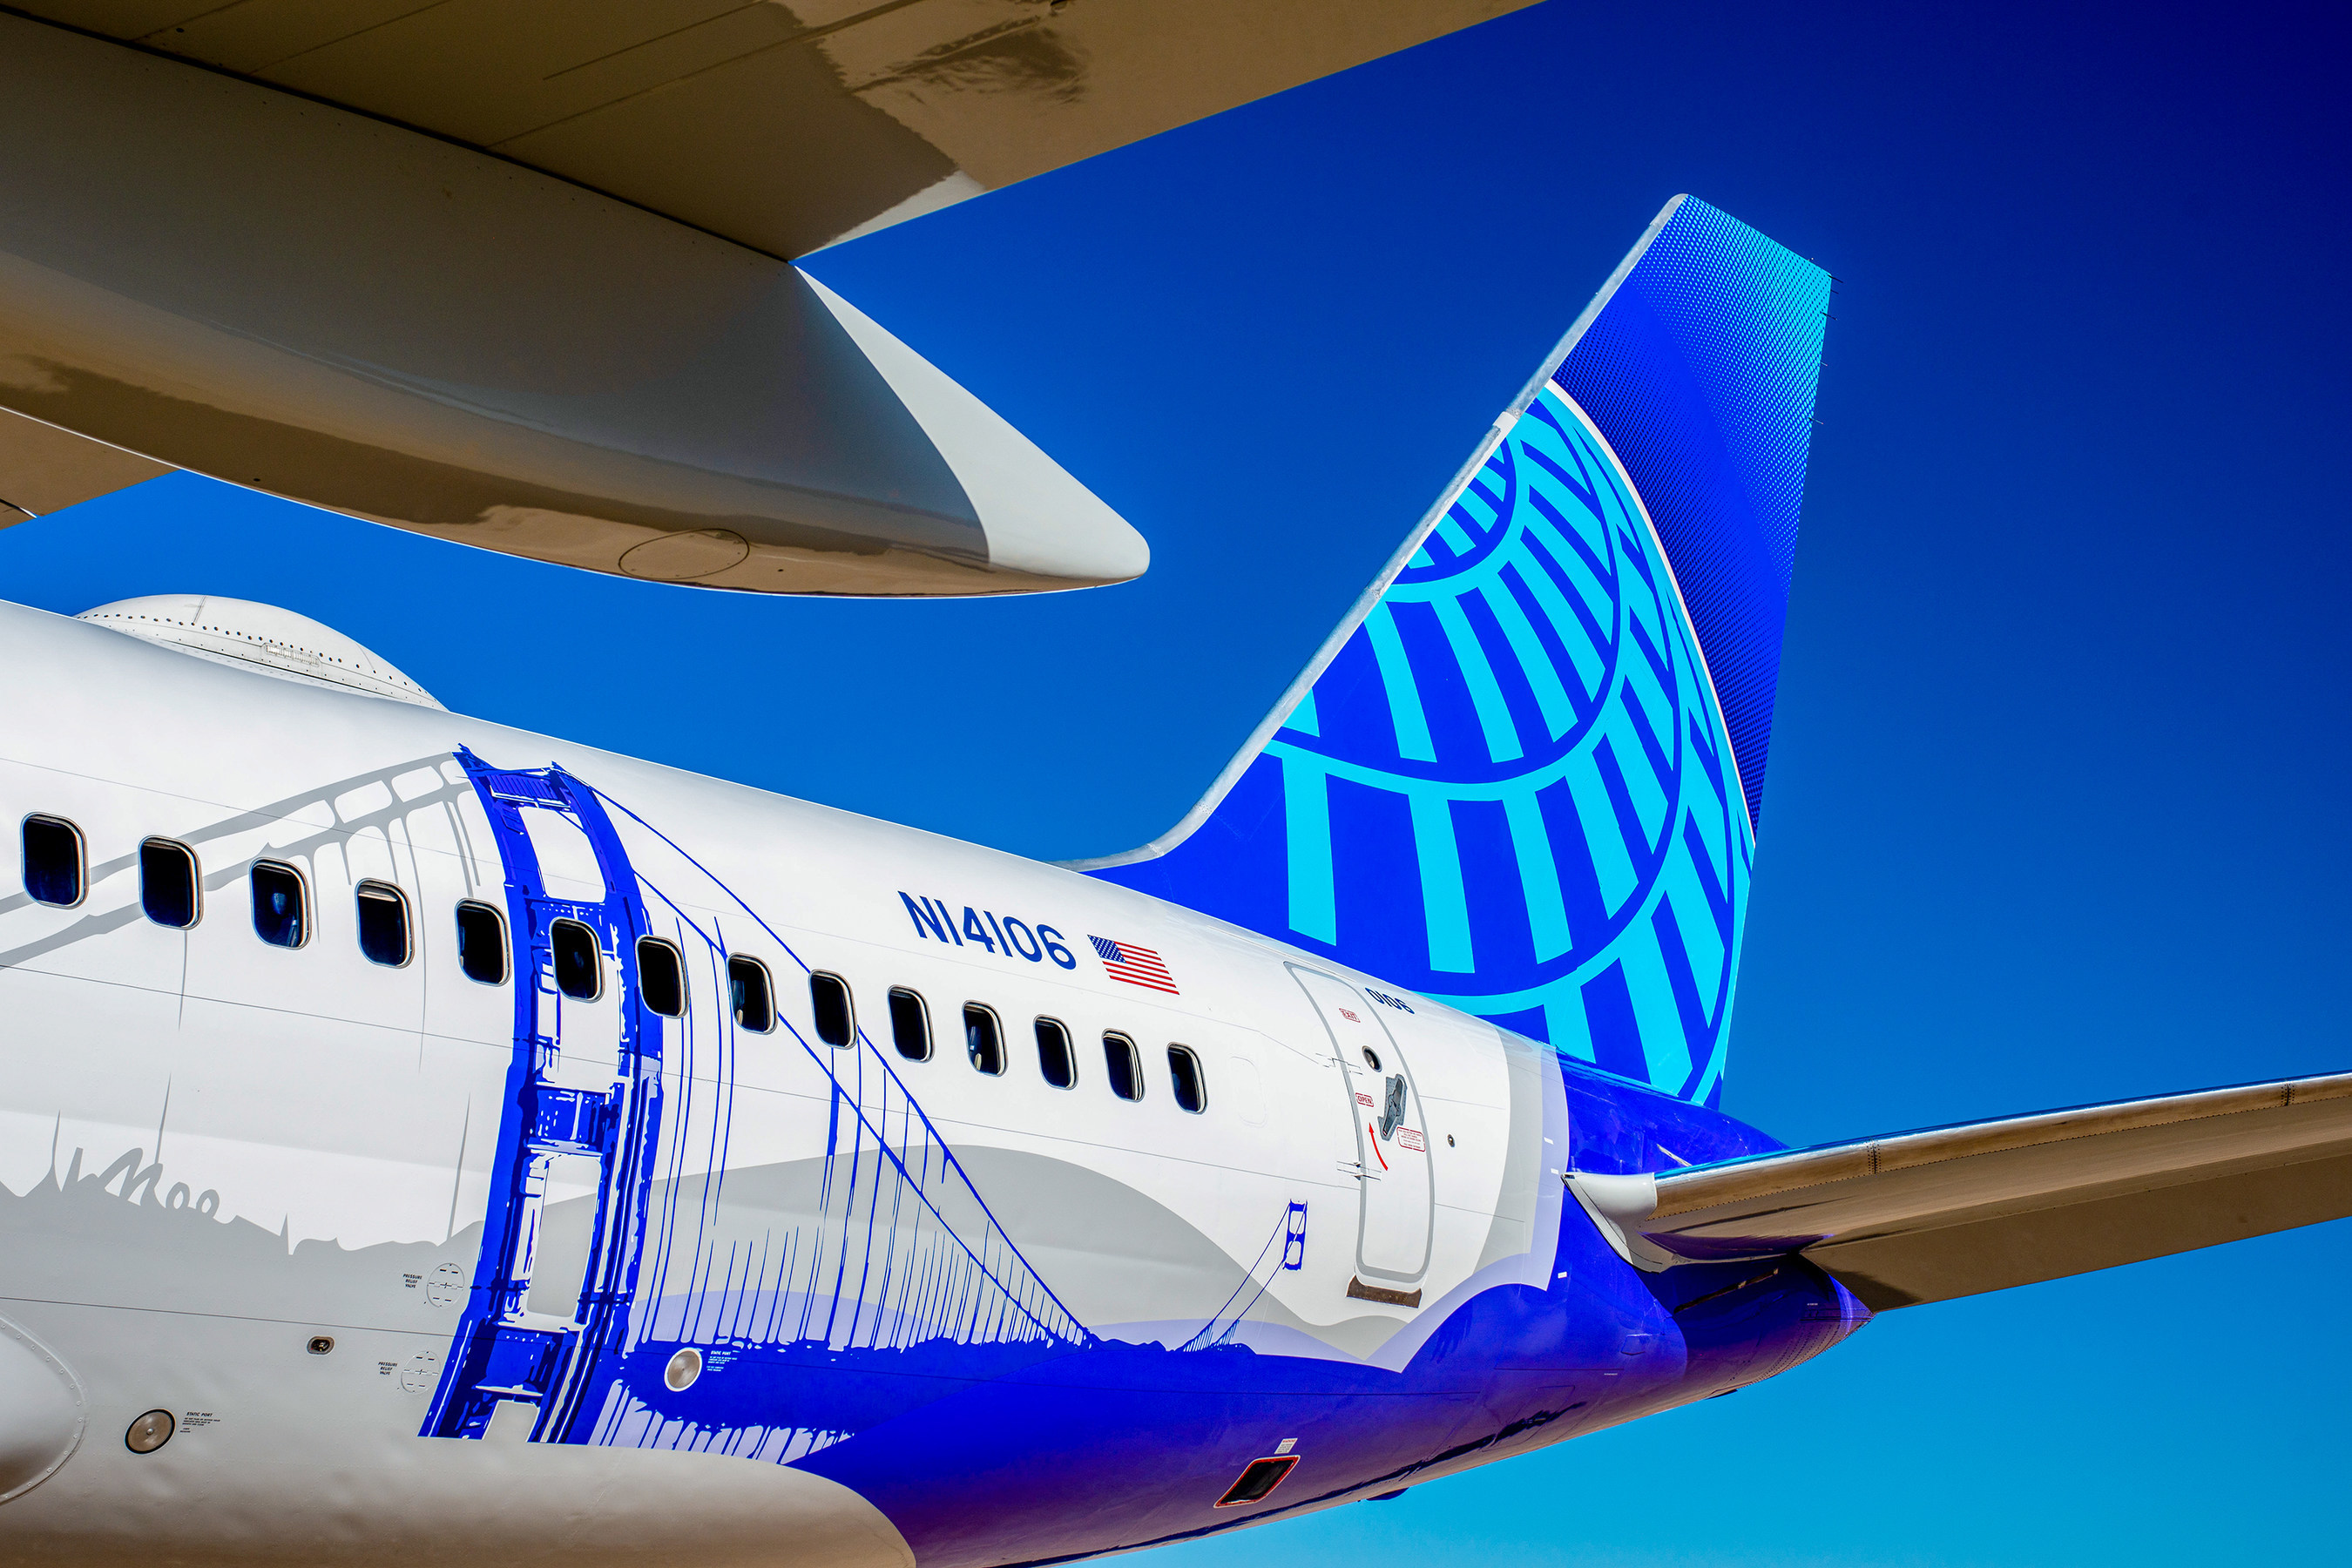 California Themed United Airlines Plane Soars Into The Friendly Skies